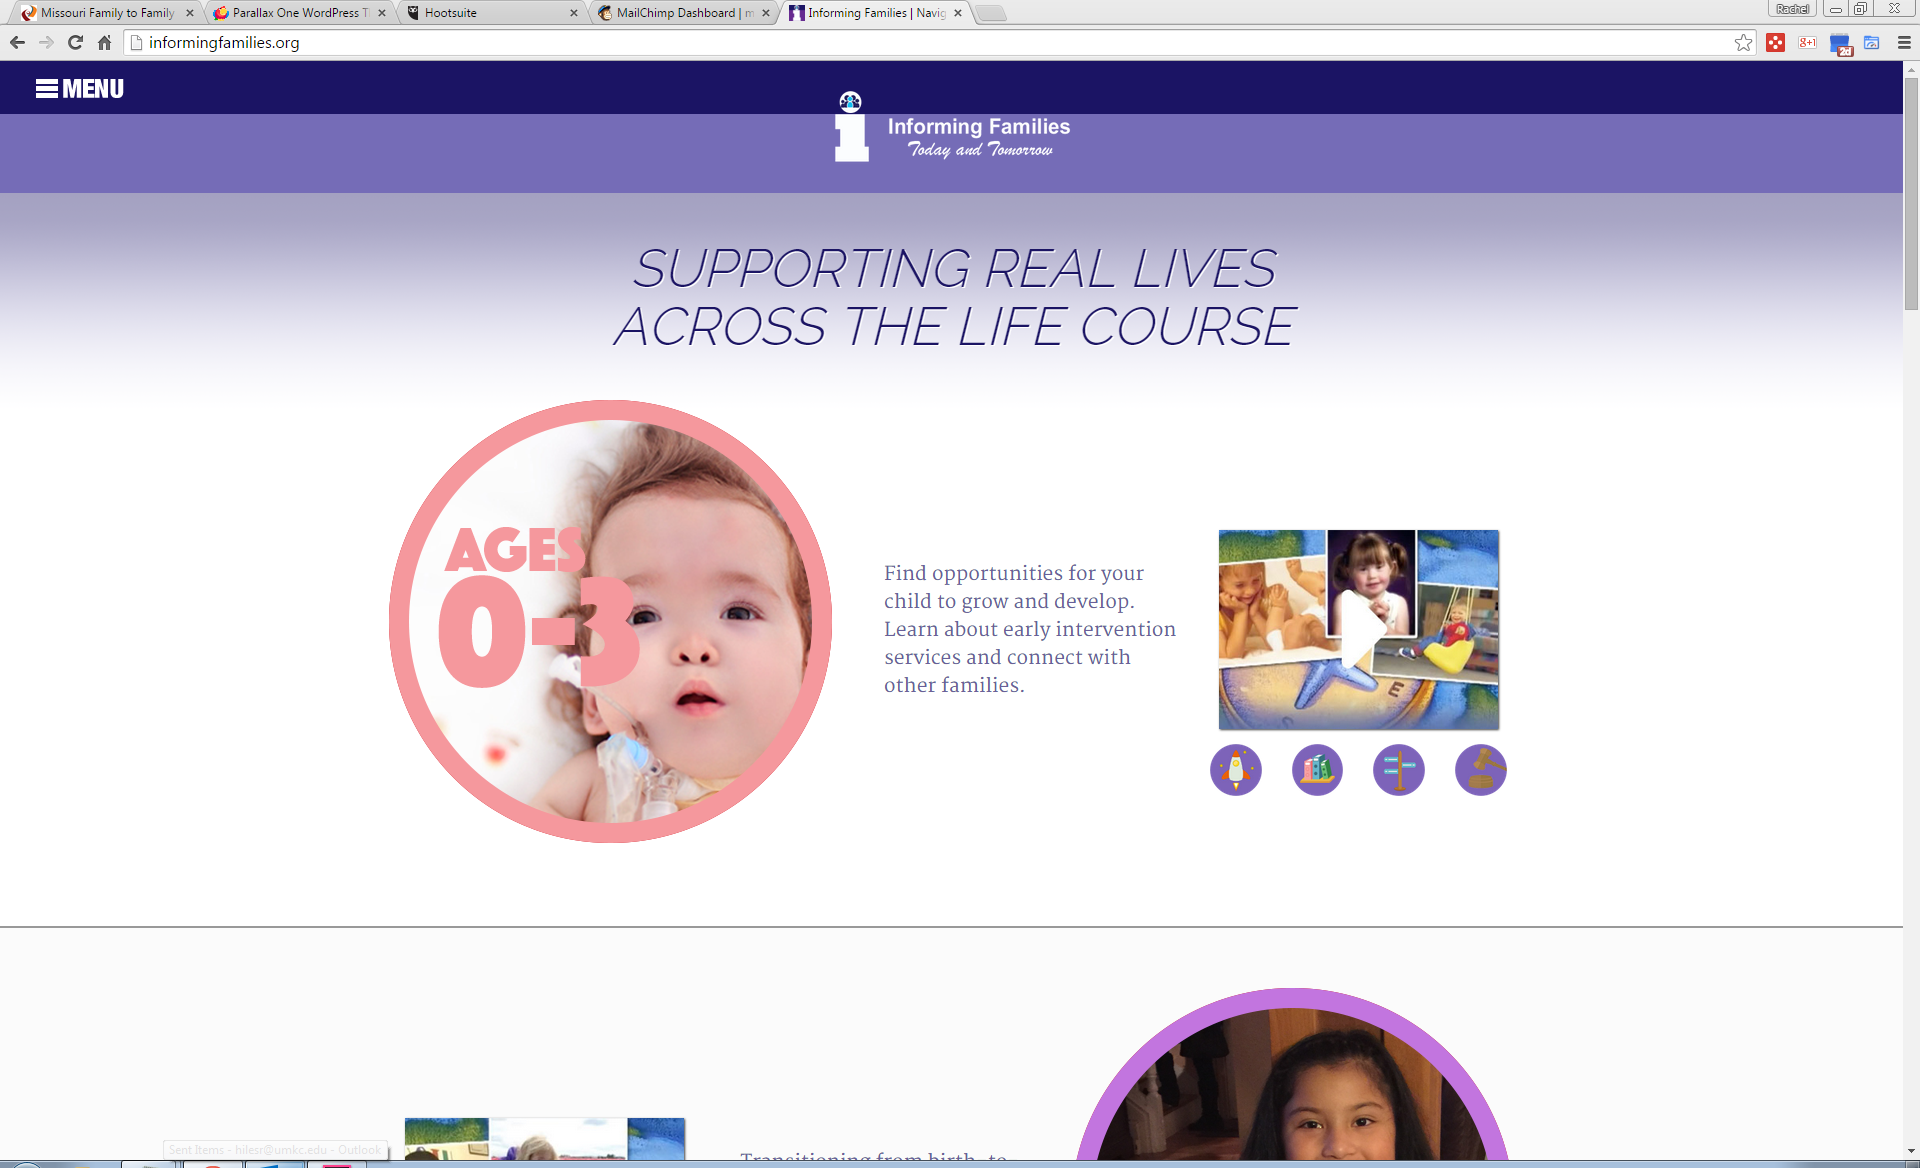 Graphic: Screenshot of informingfamilies.org, which uses the life stages from the LifeCourse framework